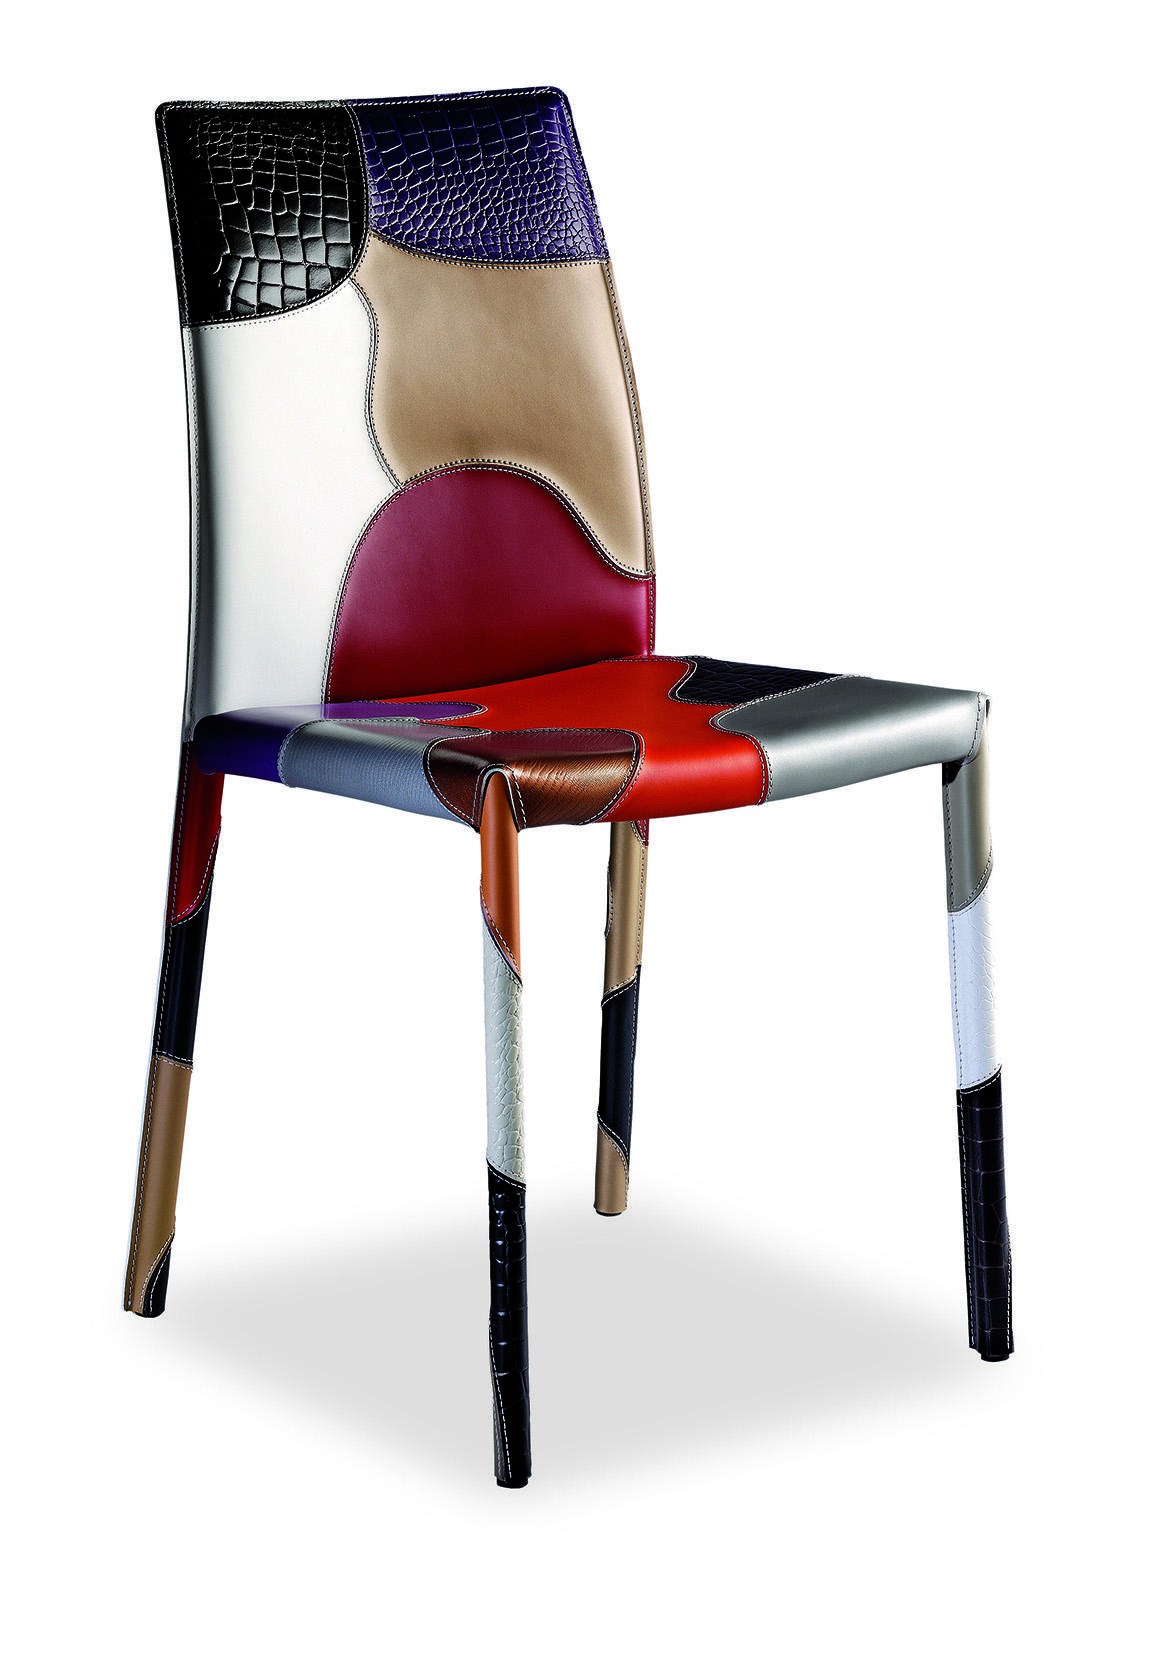 Patchwork sedia in cuoio italy dream design - Chaise de bar originale ...